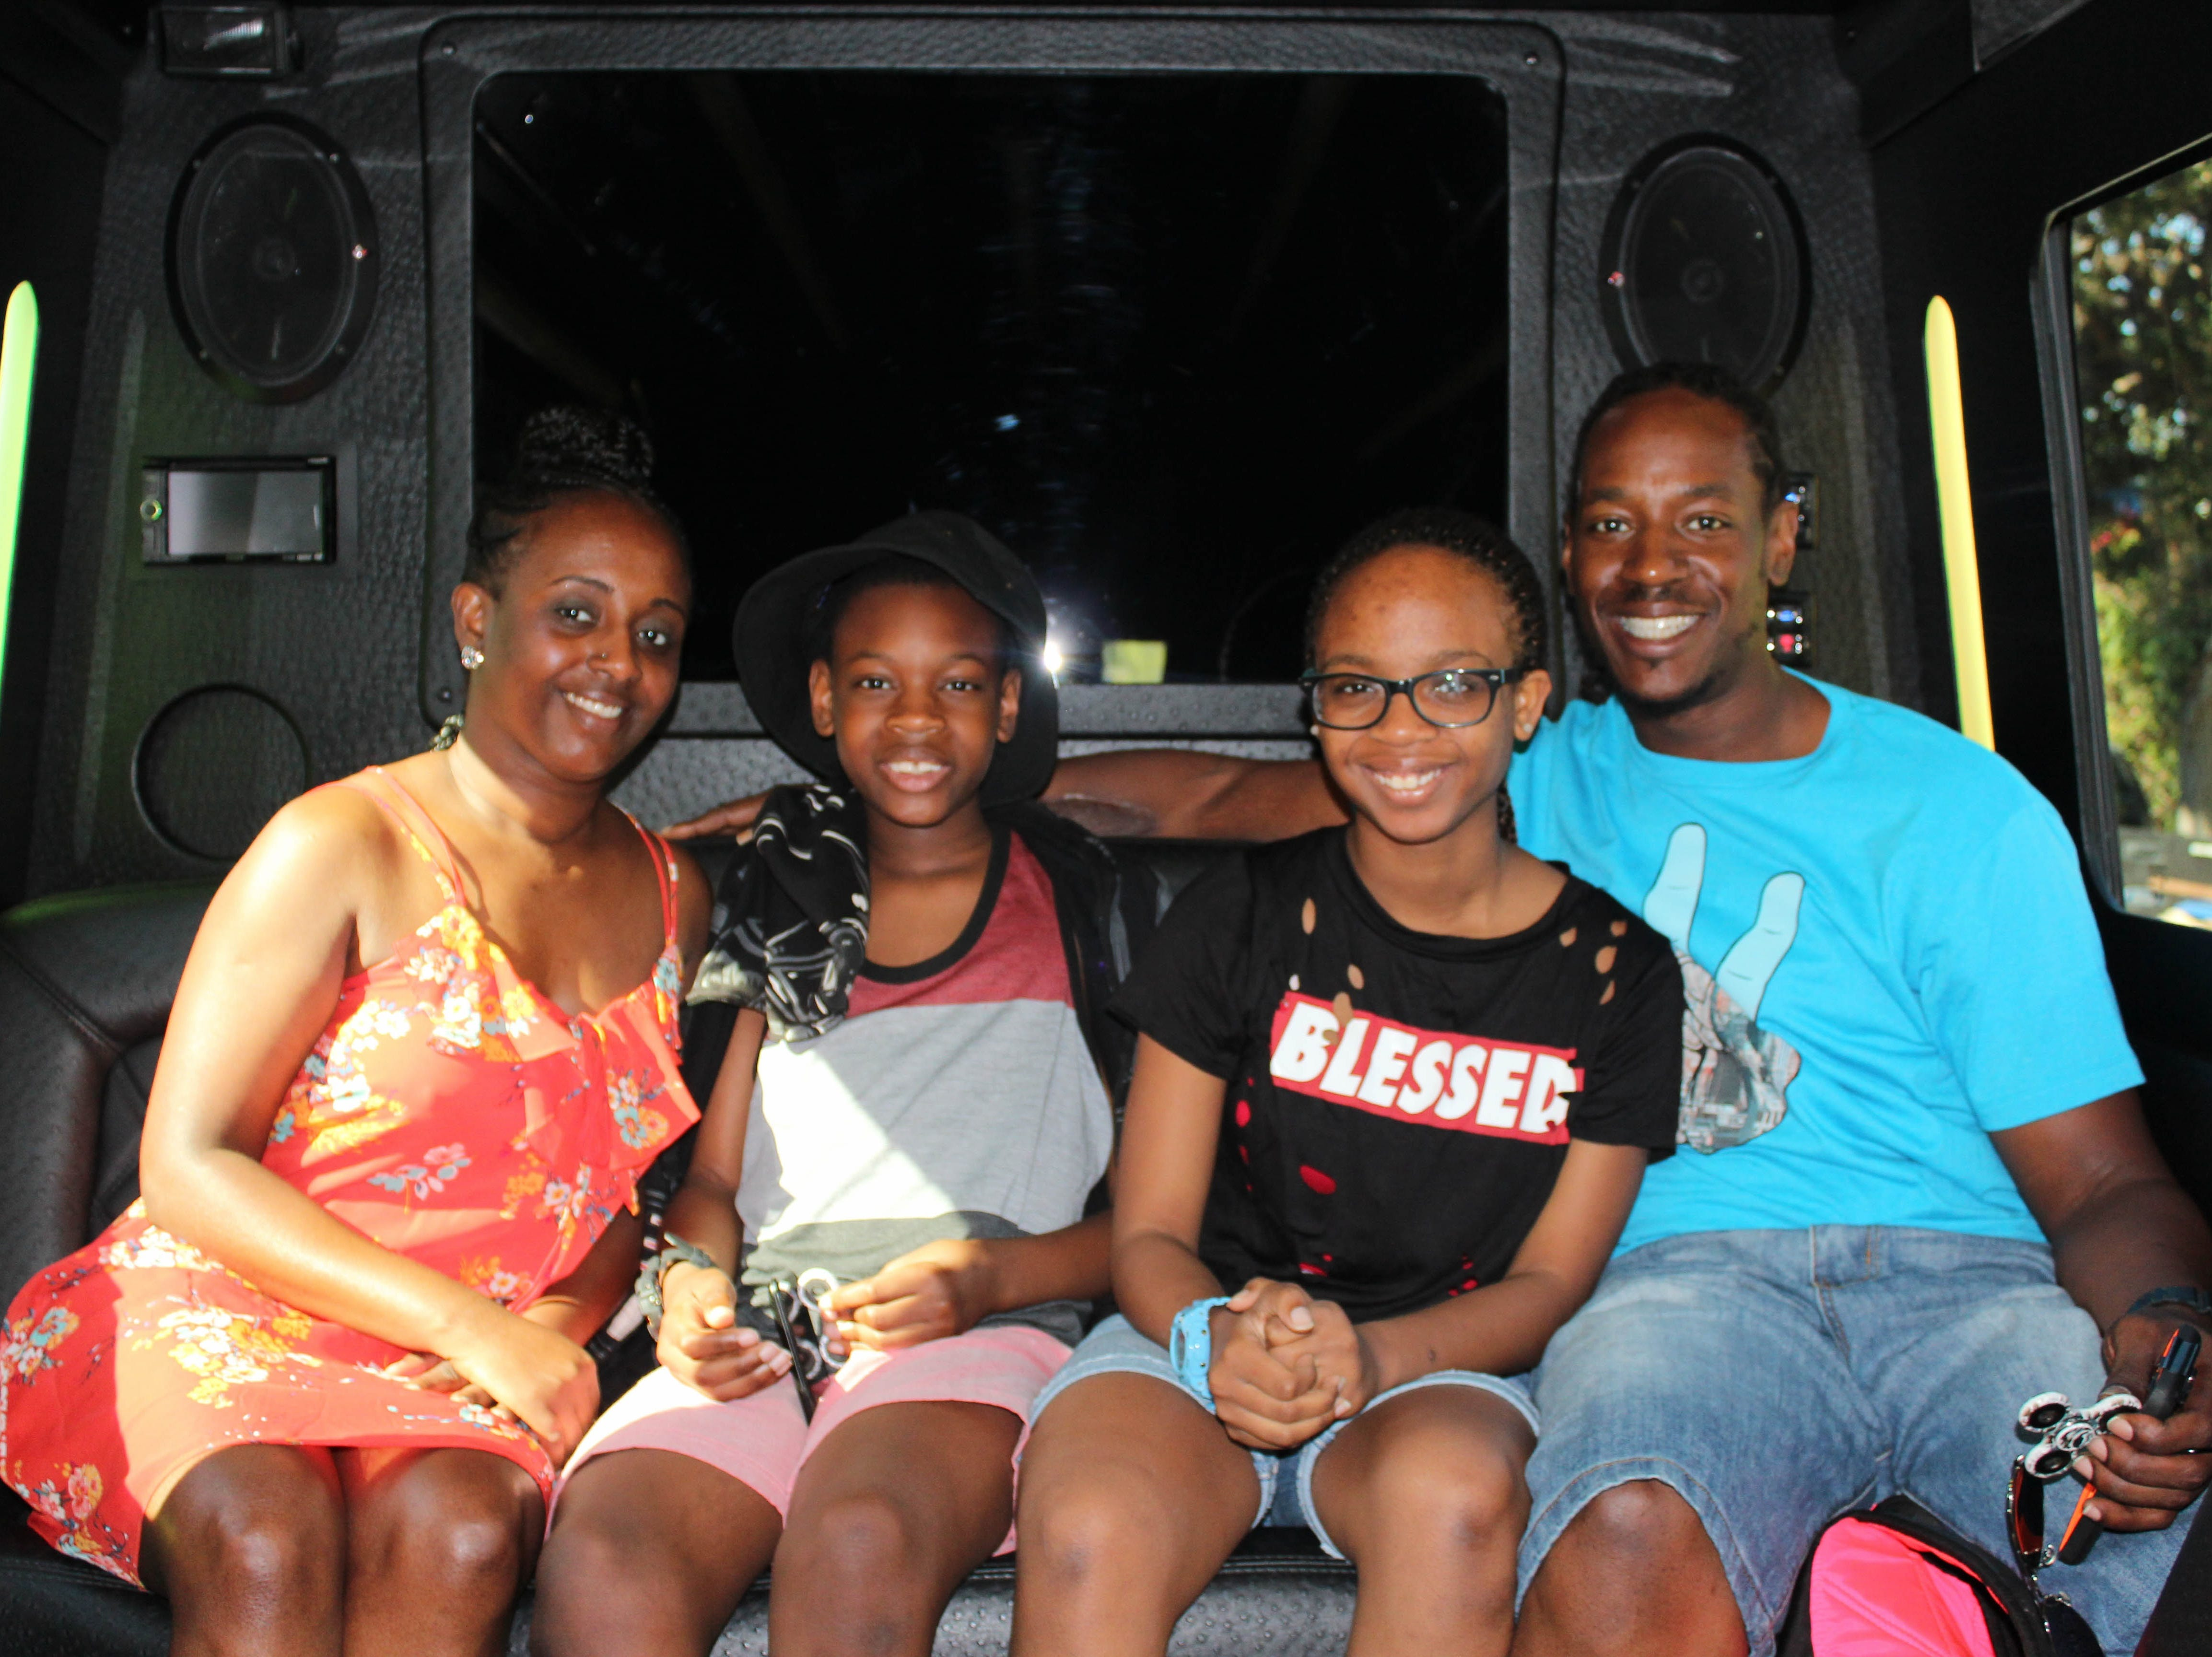 One of 62 U.S.Make-A-Wish chapters, Make-A-Wish New Jersey has granted more than10,000 life-changing wishes since its founding in 1983. Alana Essien, 17, of South Plainfield knows first-hand how impactful a wish can be to a child and their family. In June 2017, at age 15, her own wish - to be a professional recording artist - came true with a trip to Stargate in California.